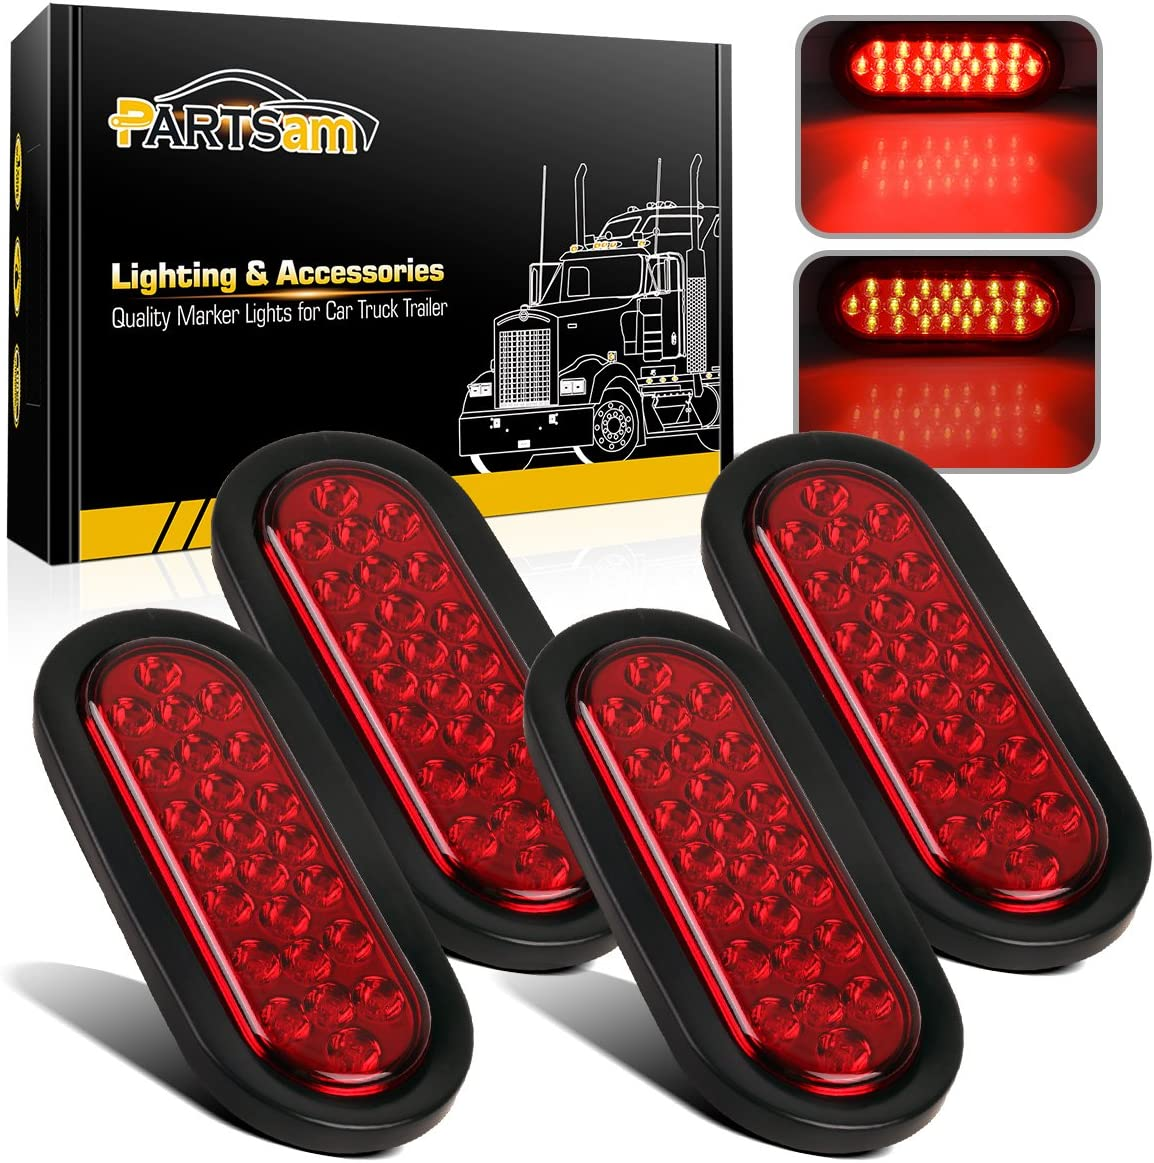 [DIAGRAM_34OR]  Amazon.com: Partsam 4Pcs 6 Inch Oval Led Trailer Tail Lights Red 24 LED  Grommet Mount, 12V 6 inch Oval Red Stop Tail Turn Brake Truck Tractor  Trailer Boat Sealed Marker Clearance Lights   Oval Trailer Light Wiring Diagram For 6      Amazon.com